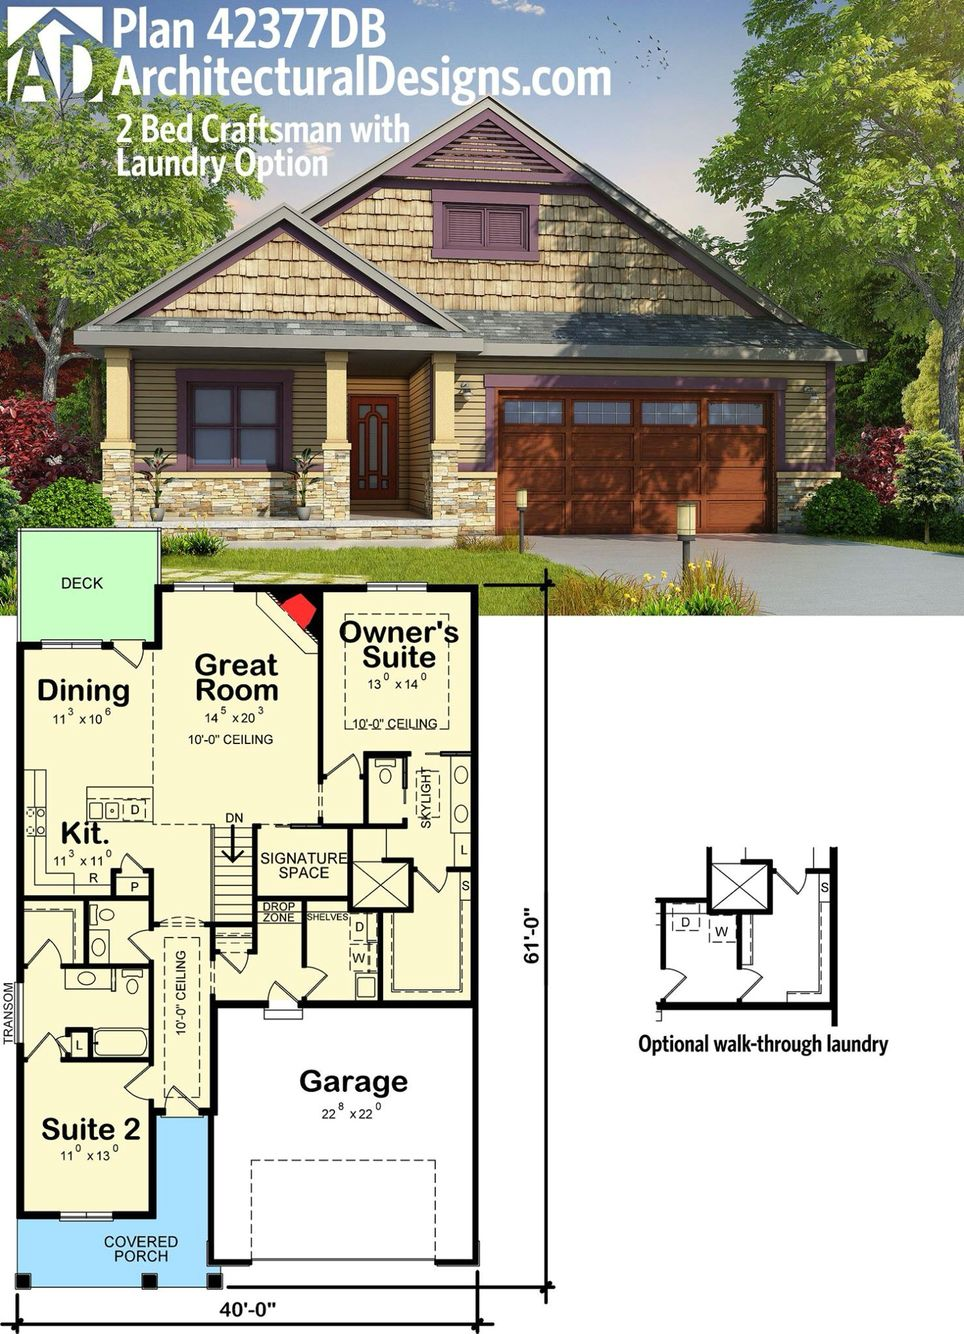 Plan 42377db 2 Bed Craftsman House Plan With Laundry Option Craftsman House Cottage Plan Dream House Plans